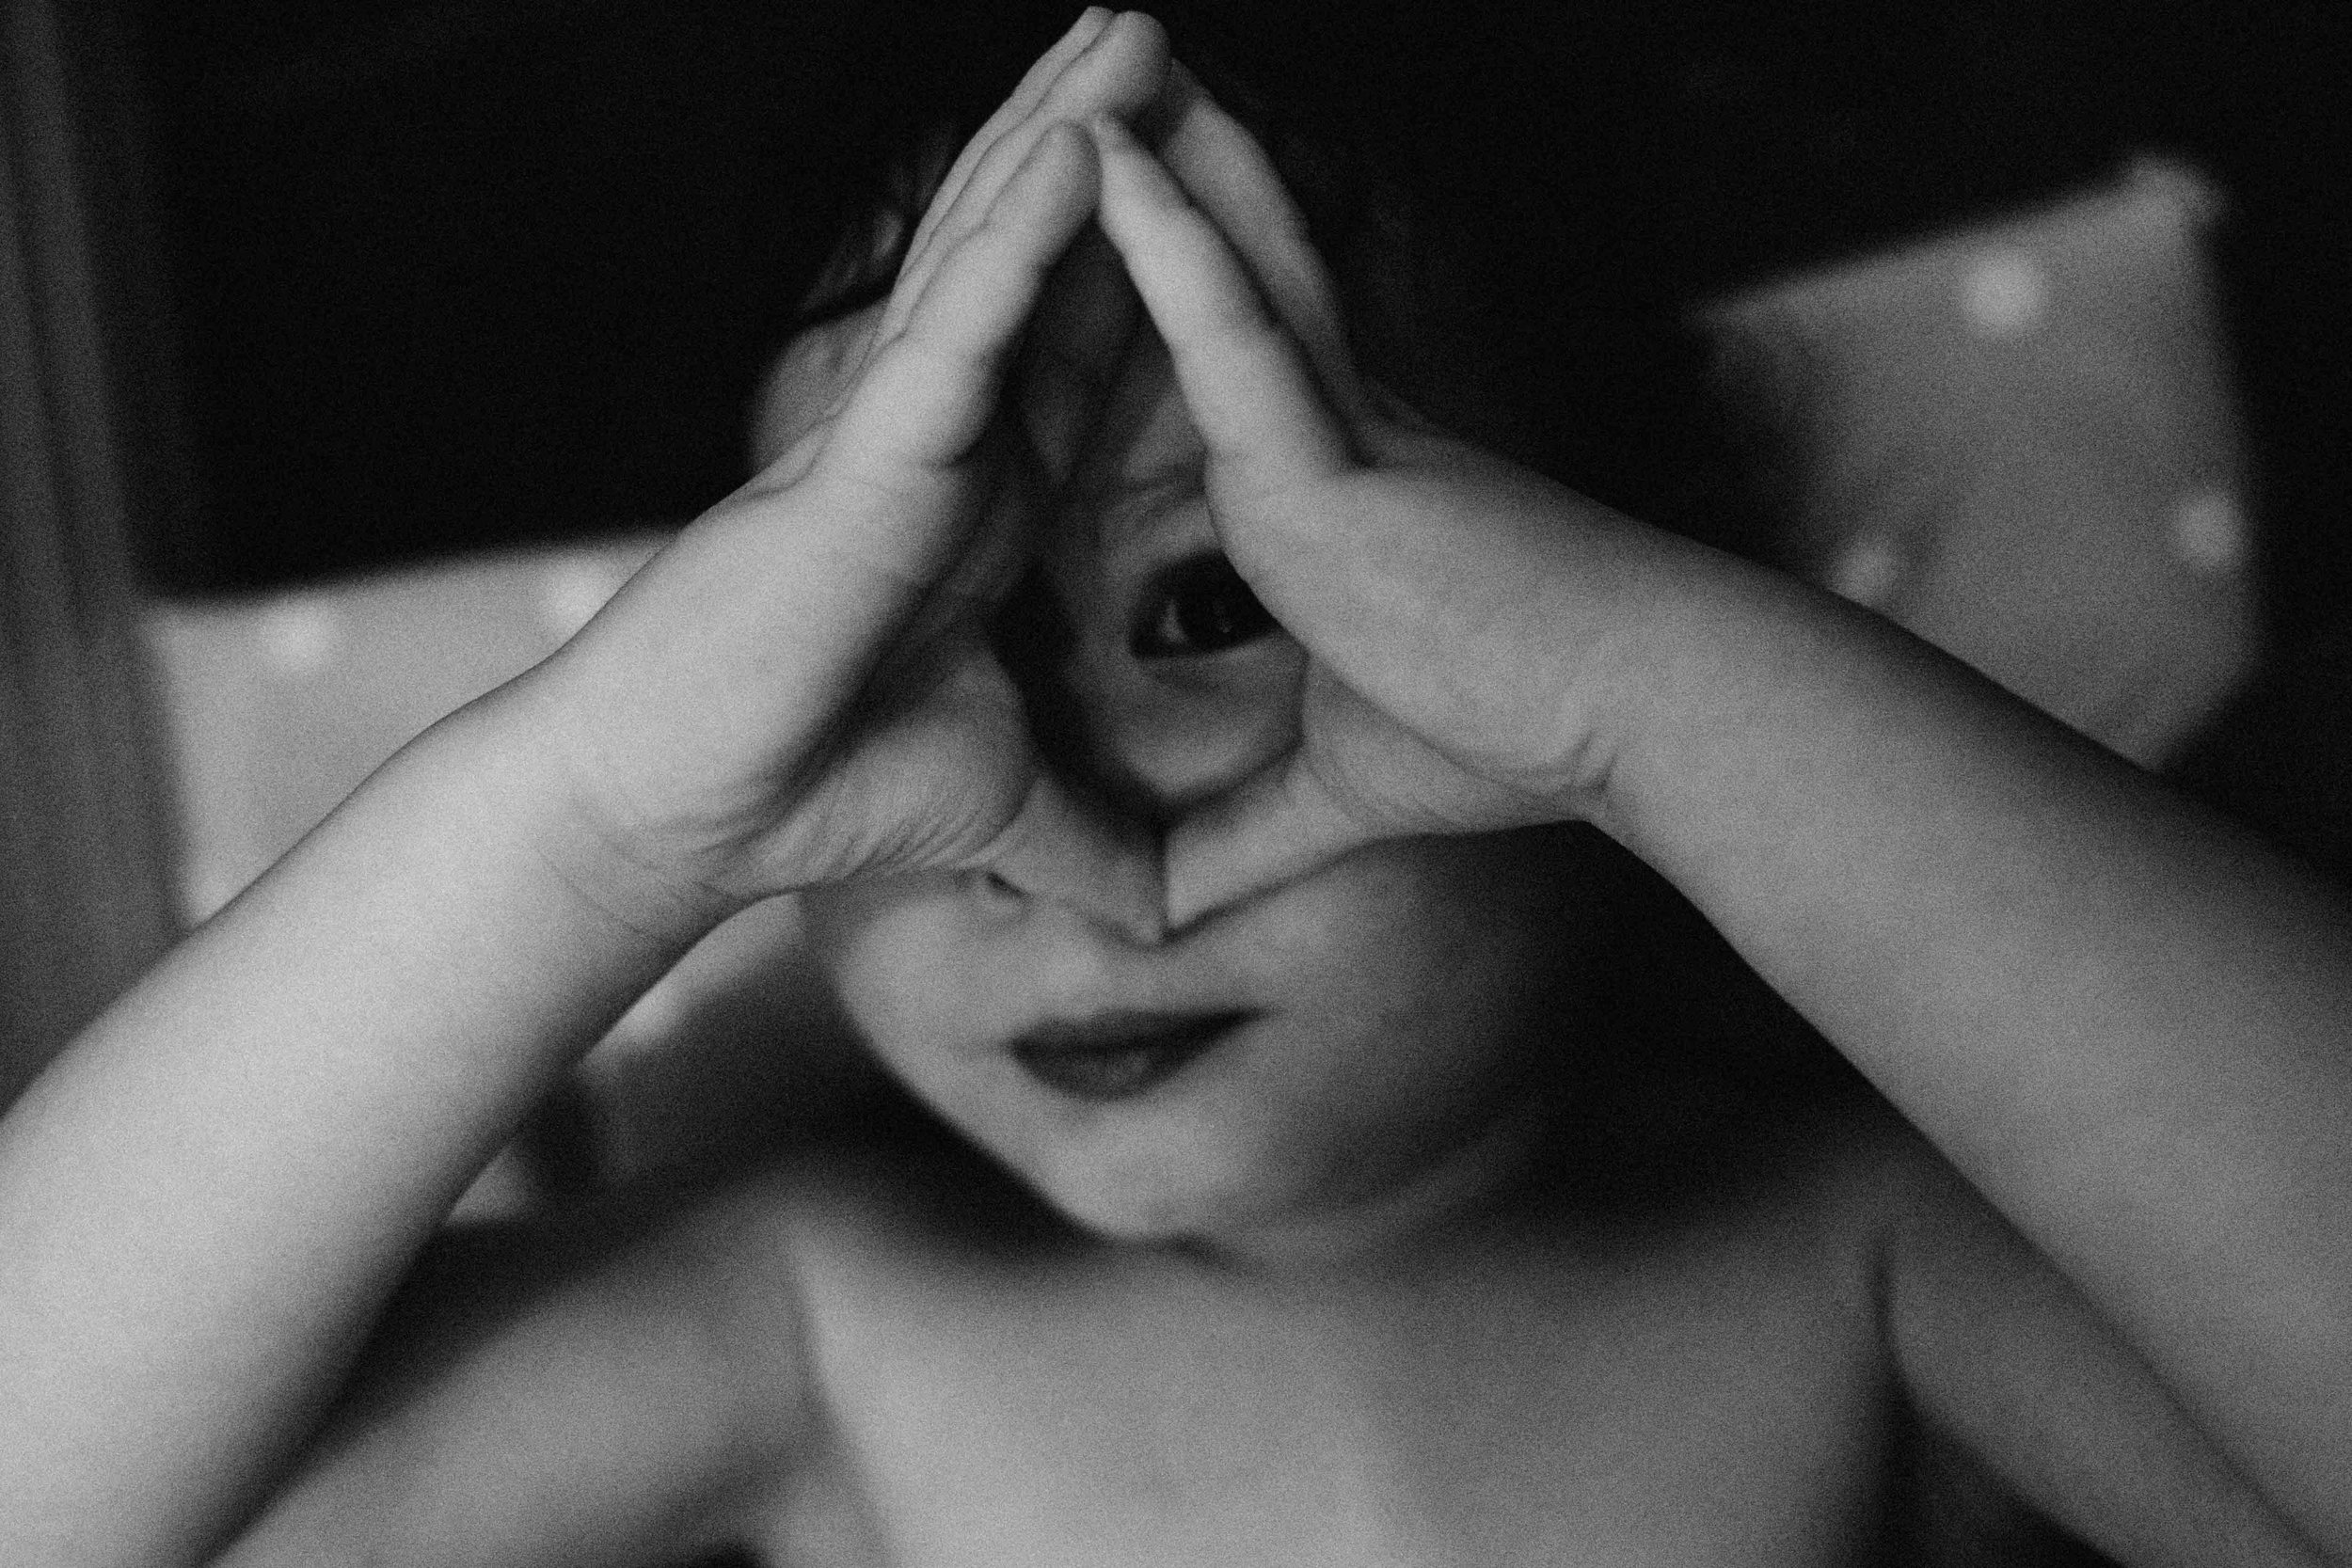 Boy looking through his hands